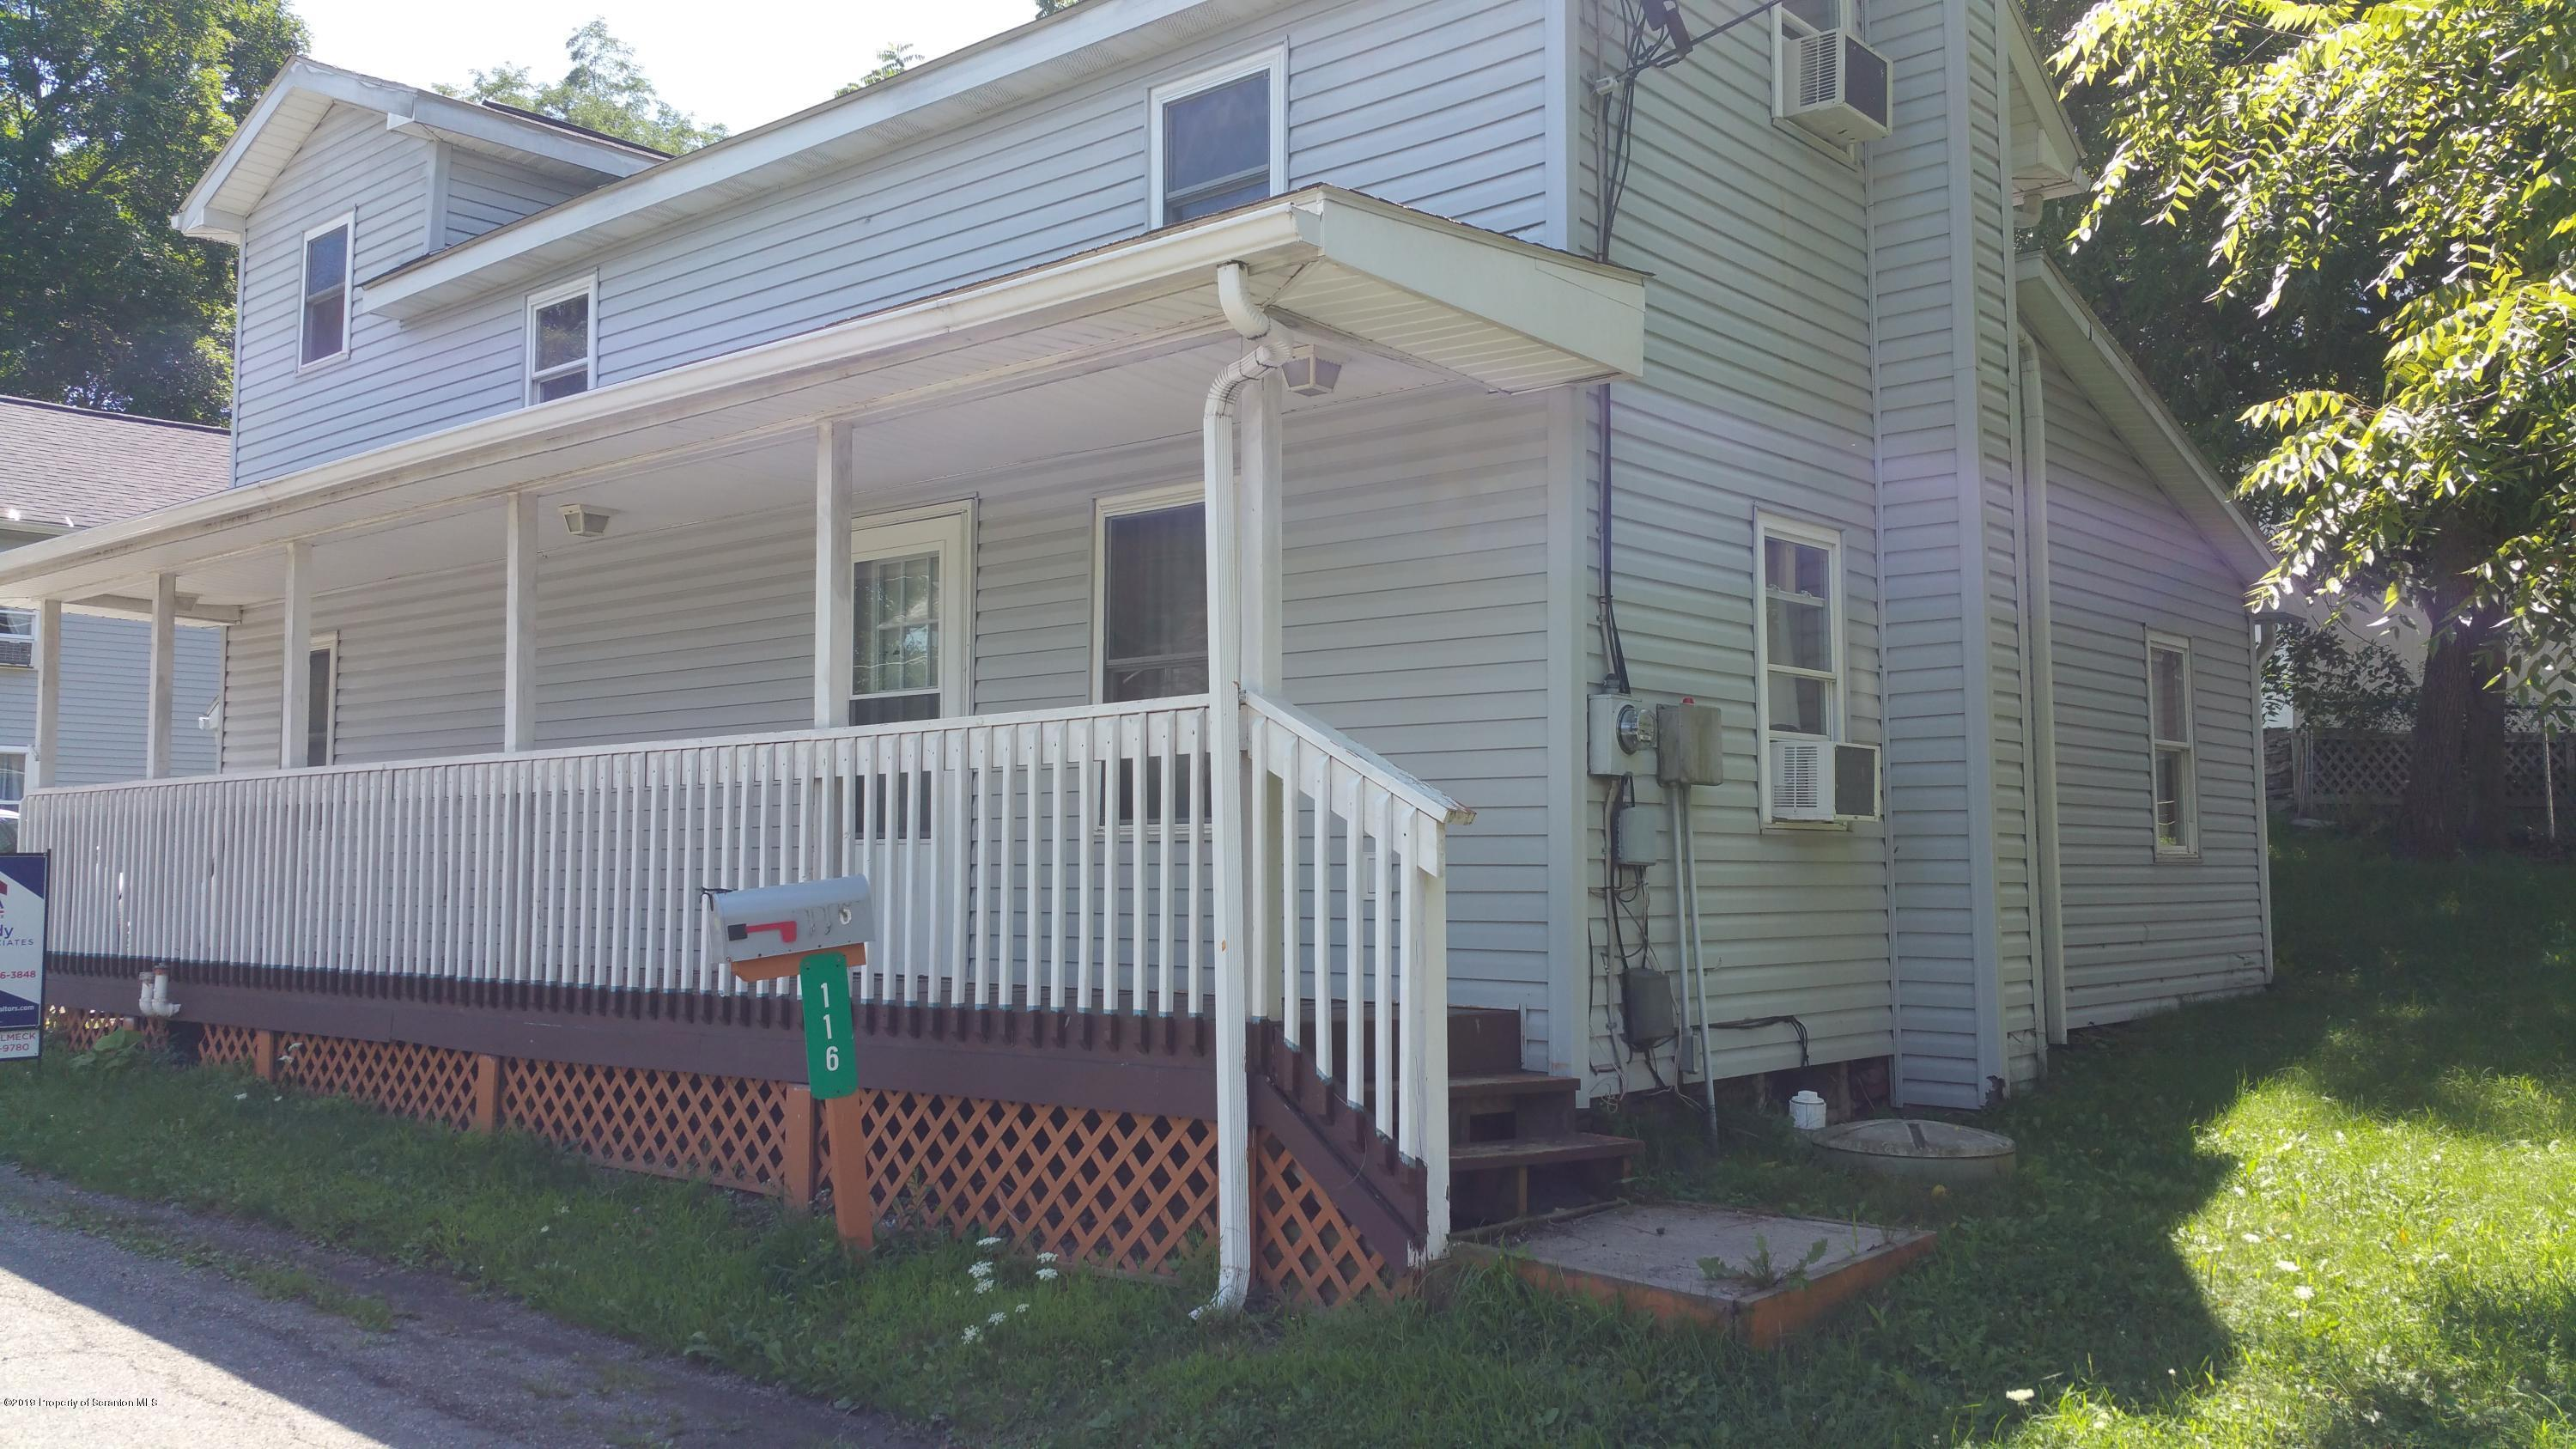 116 Race St, Mehoopany, Pennsylvania 18629, 3 Bedrooms Bedrooms, 5 Rooms Rooms,1 BathroomBathrooms,Single Family,For Sale,Race,19-5400